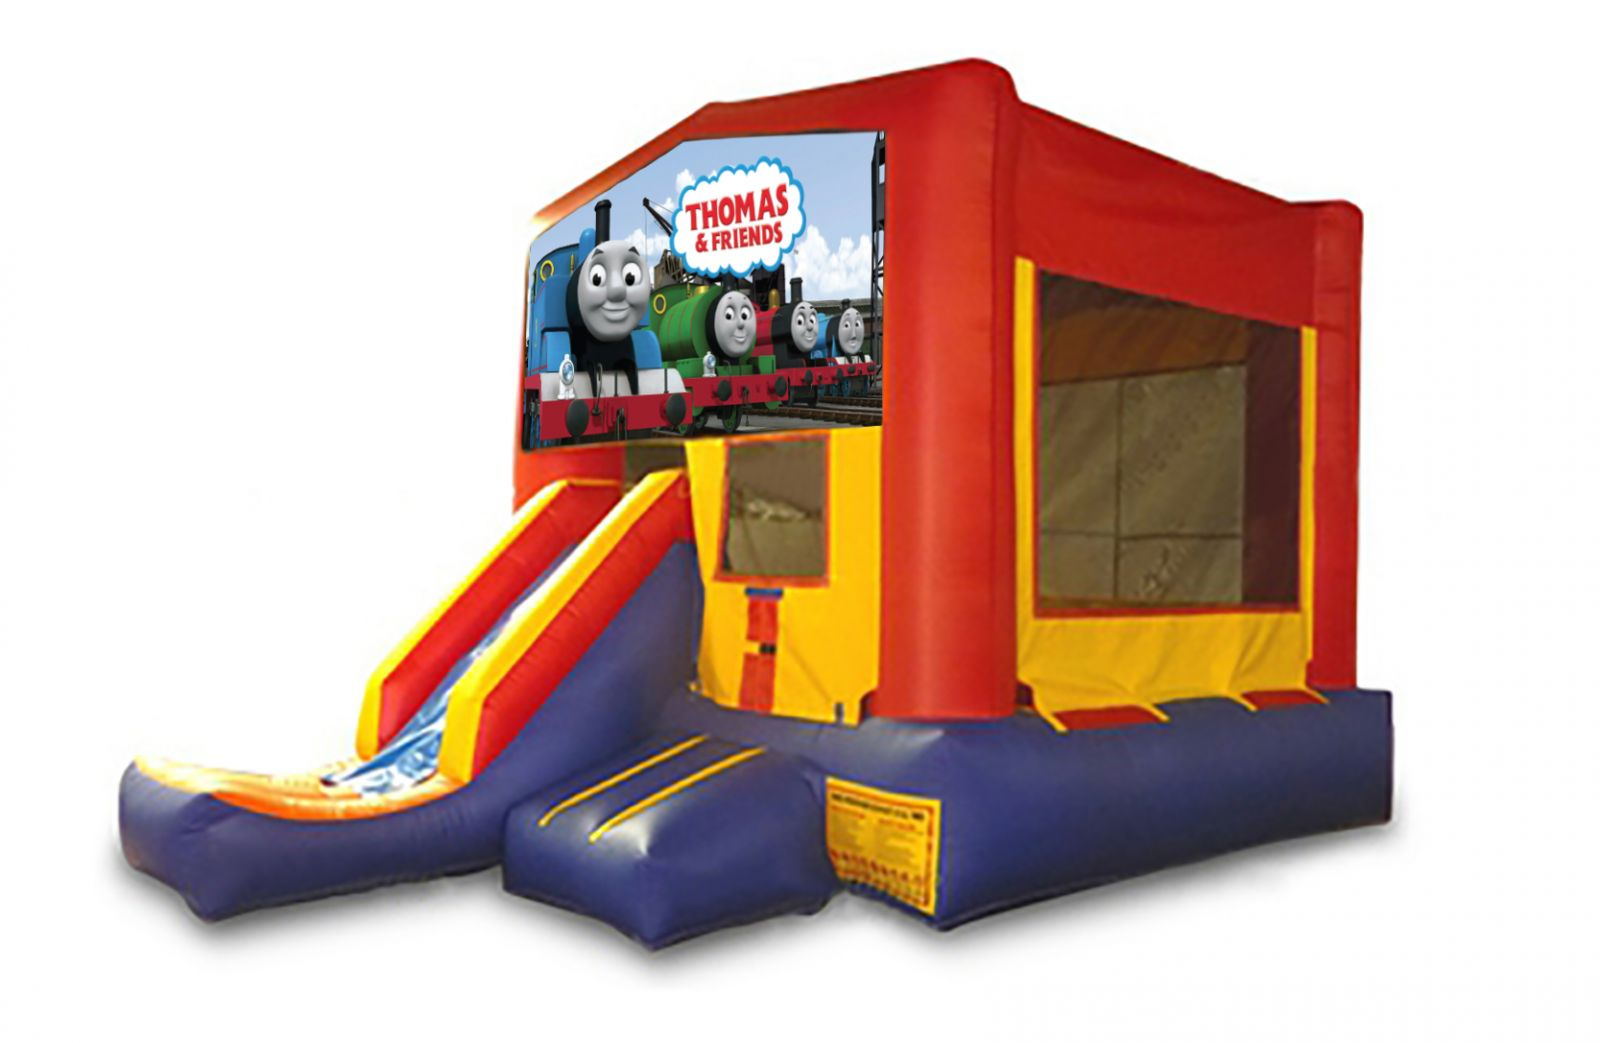 Red And Blue Thomas The Trainl Bounce House With Slide